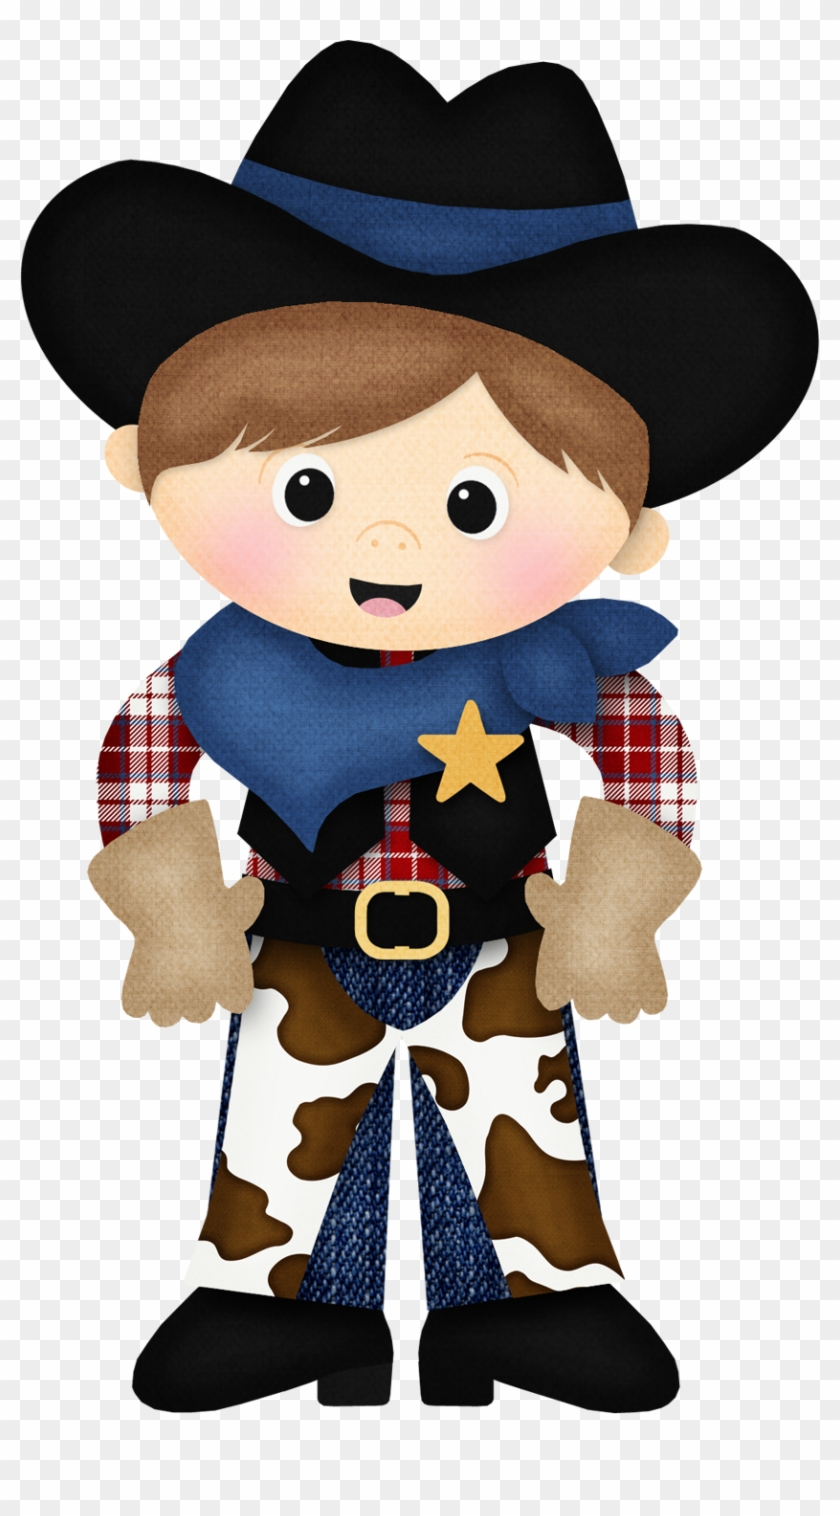 Explore Cowgirl Party, Western Theme, And More - Cowboy Cowgirl Clip Art #287389